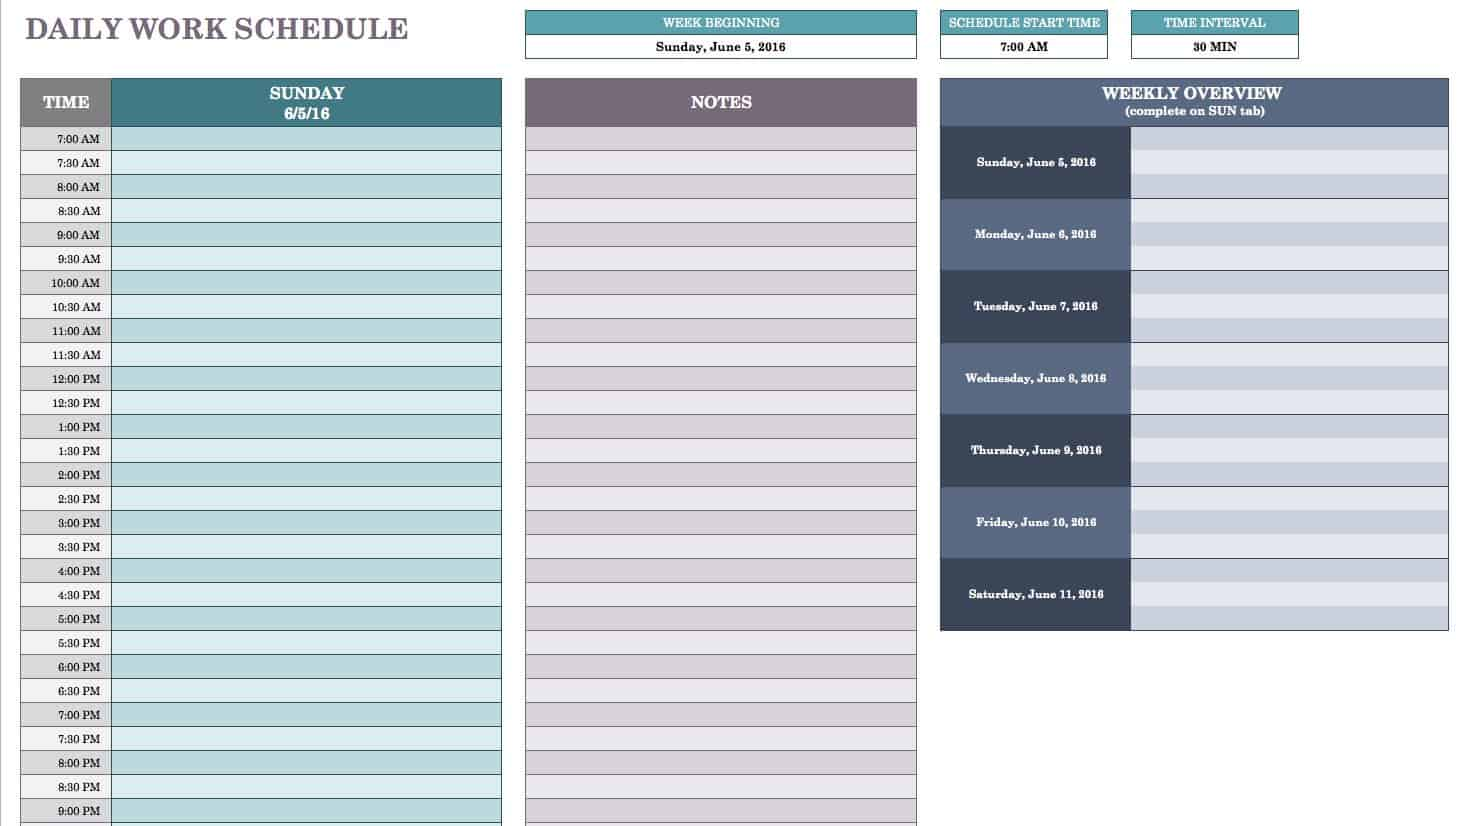 Free weekly schedule templates for excel 18 templates.